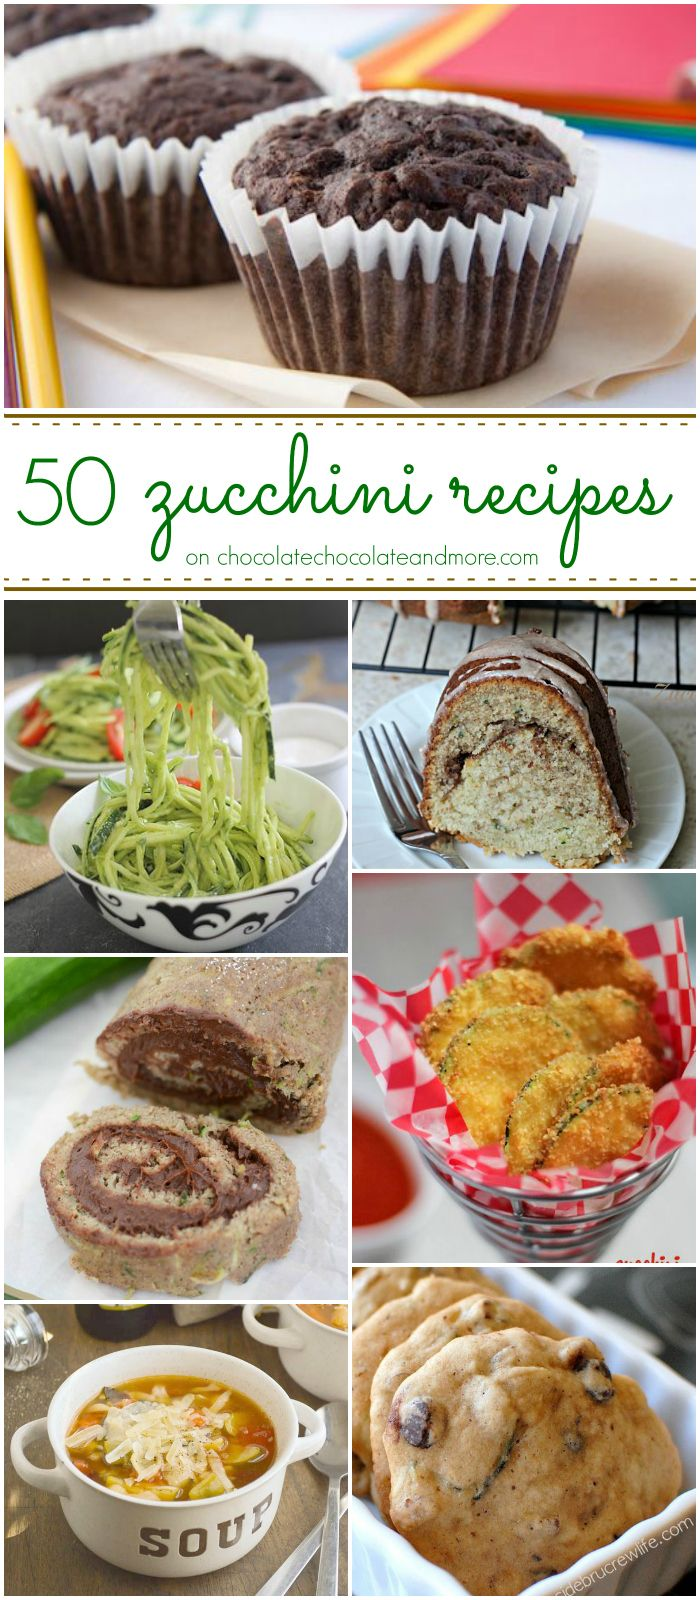 50 Zucchini Recipes| Fifty great ways to use all those zucchinis from the garden